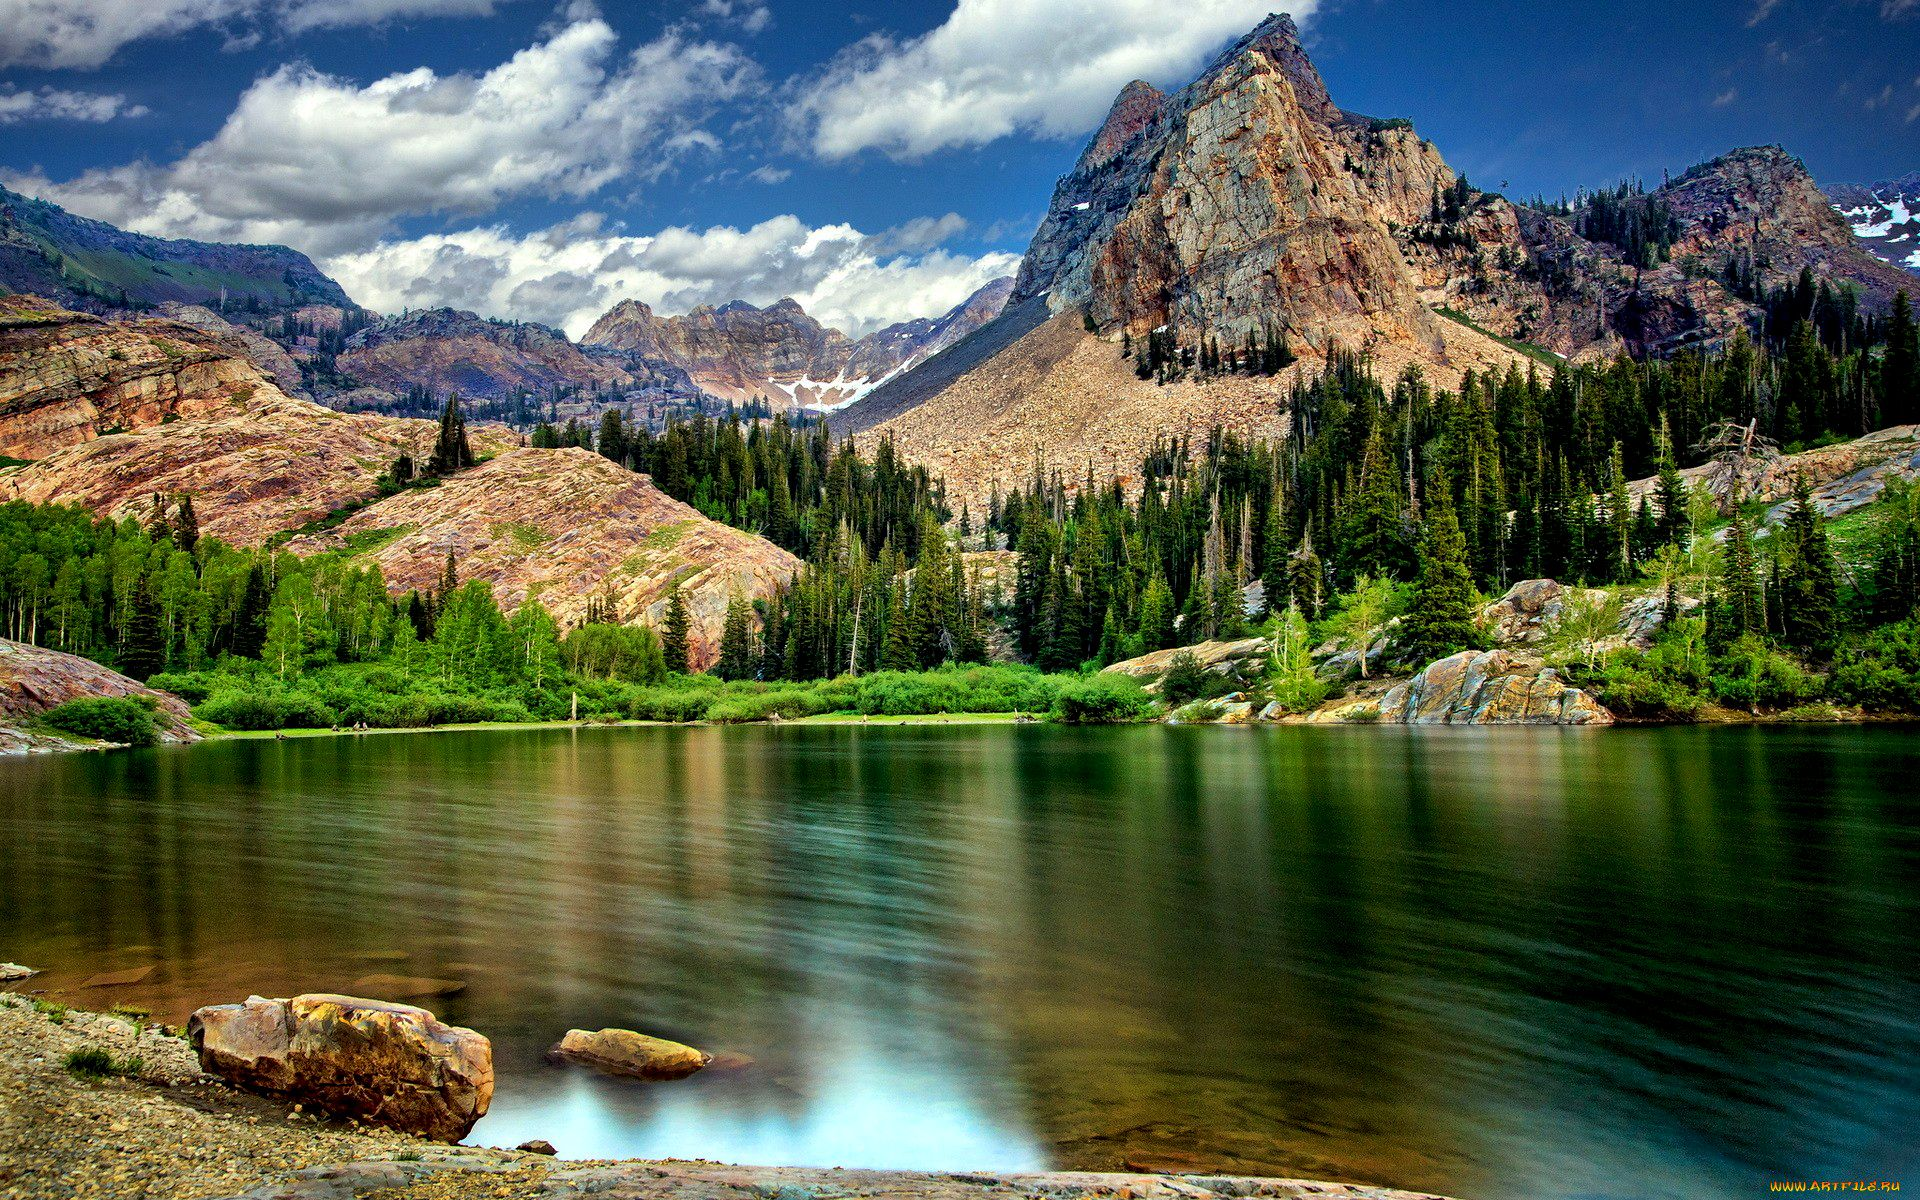 Wallpaper Dump.. HDR Nature-nature-landscapes_widewallpaper_superb-lake-lscape-hdr_19537